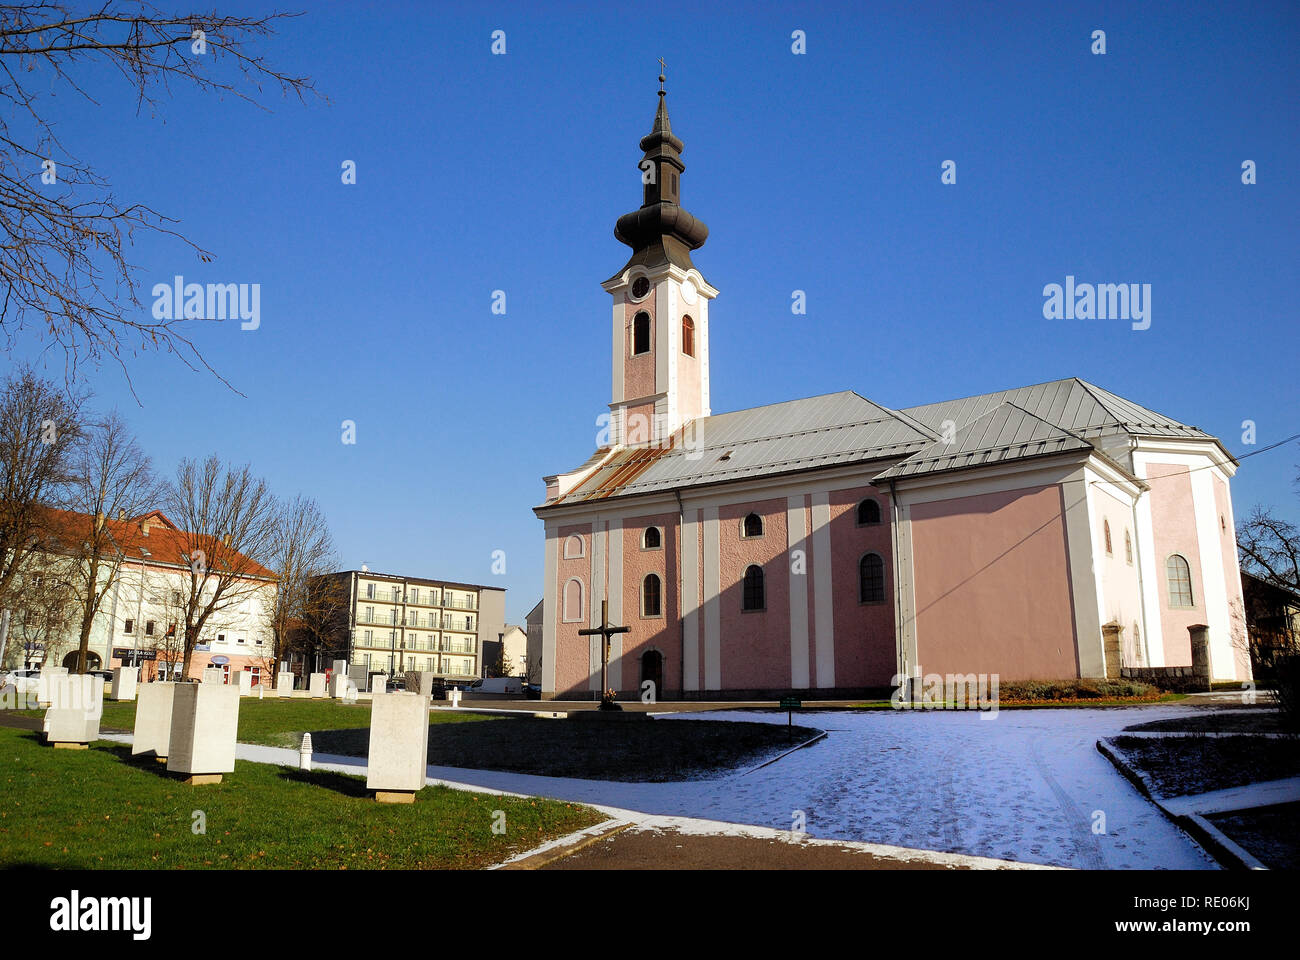 Otocac, Croatia. The  Church of the Holy Trinity. It was knocked down from the Yugoslav People's Army artillery on 15 September 1991 during the Yugoslav wars. The church has been destroyed several times over the centuries by fires and storms. - Stock Image